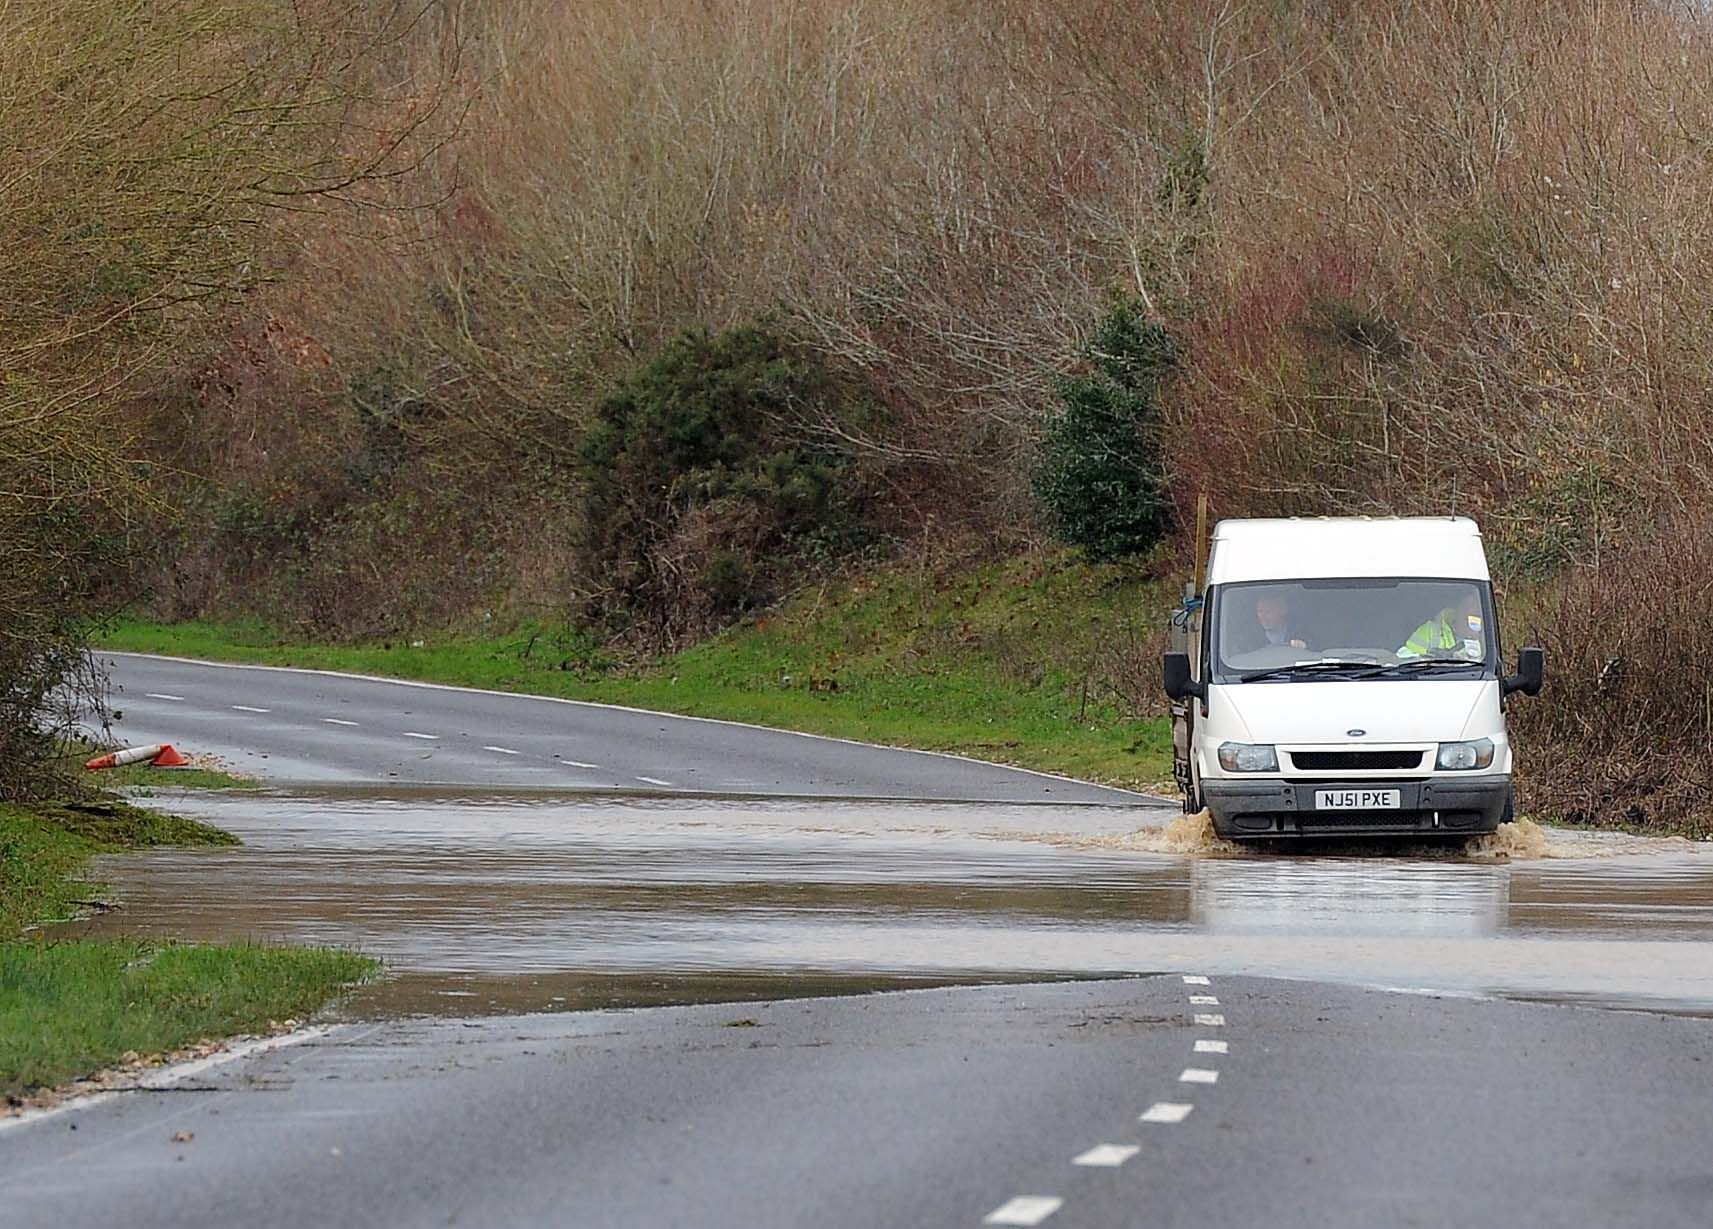 County escapes worst of stormy weather but warnings remain in place